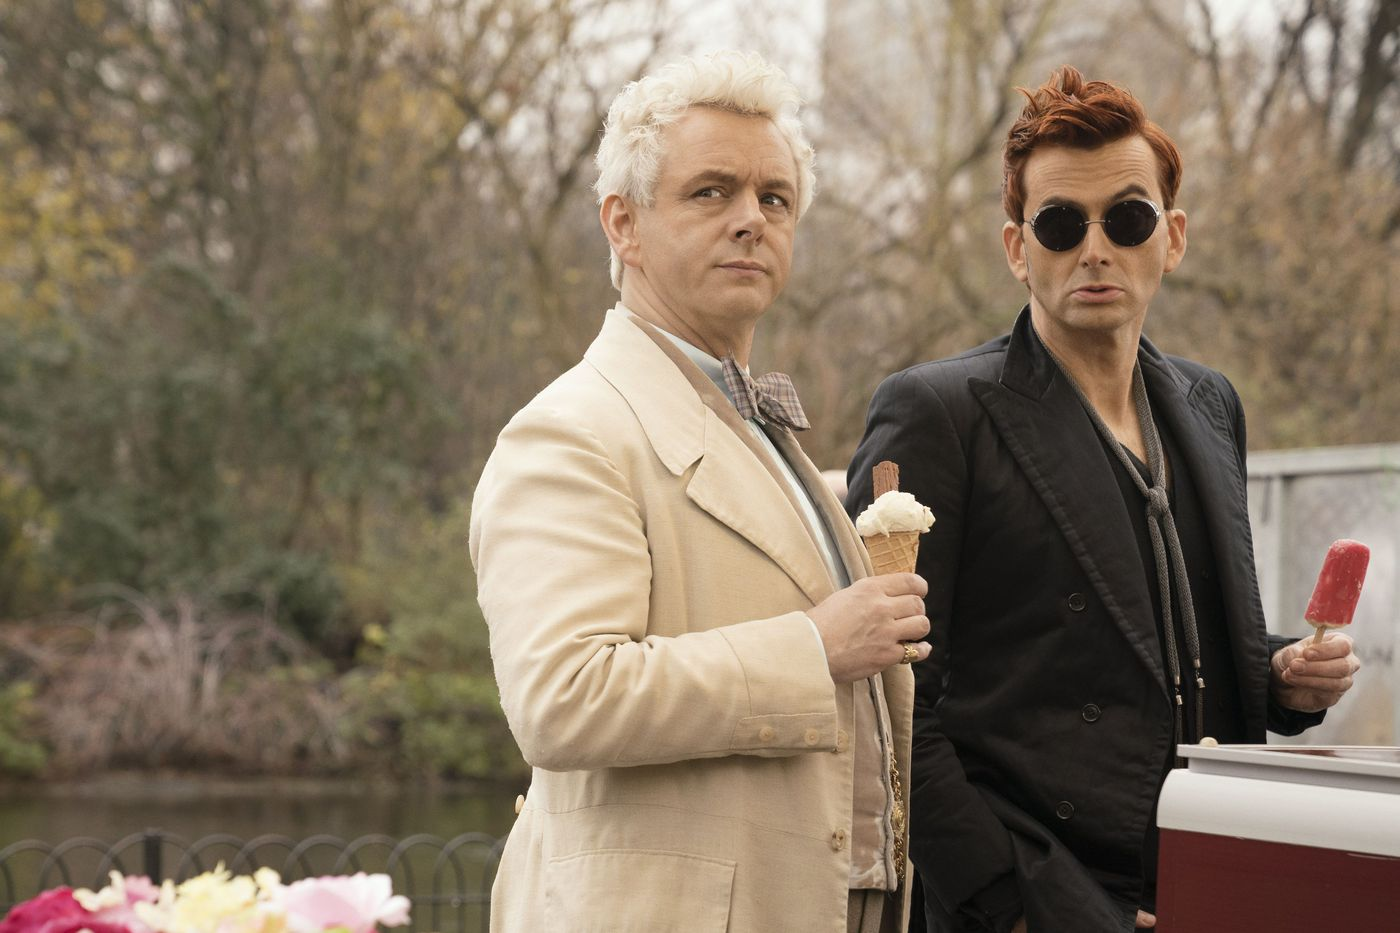 At heart, Amazon's Good Omens is a gay cosmic rom-com - The Verge